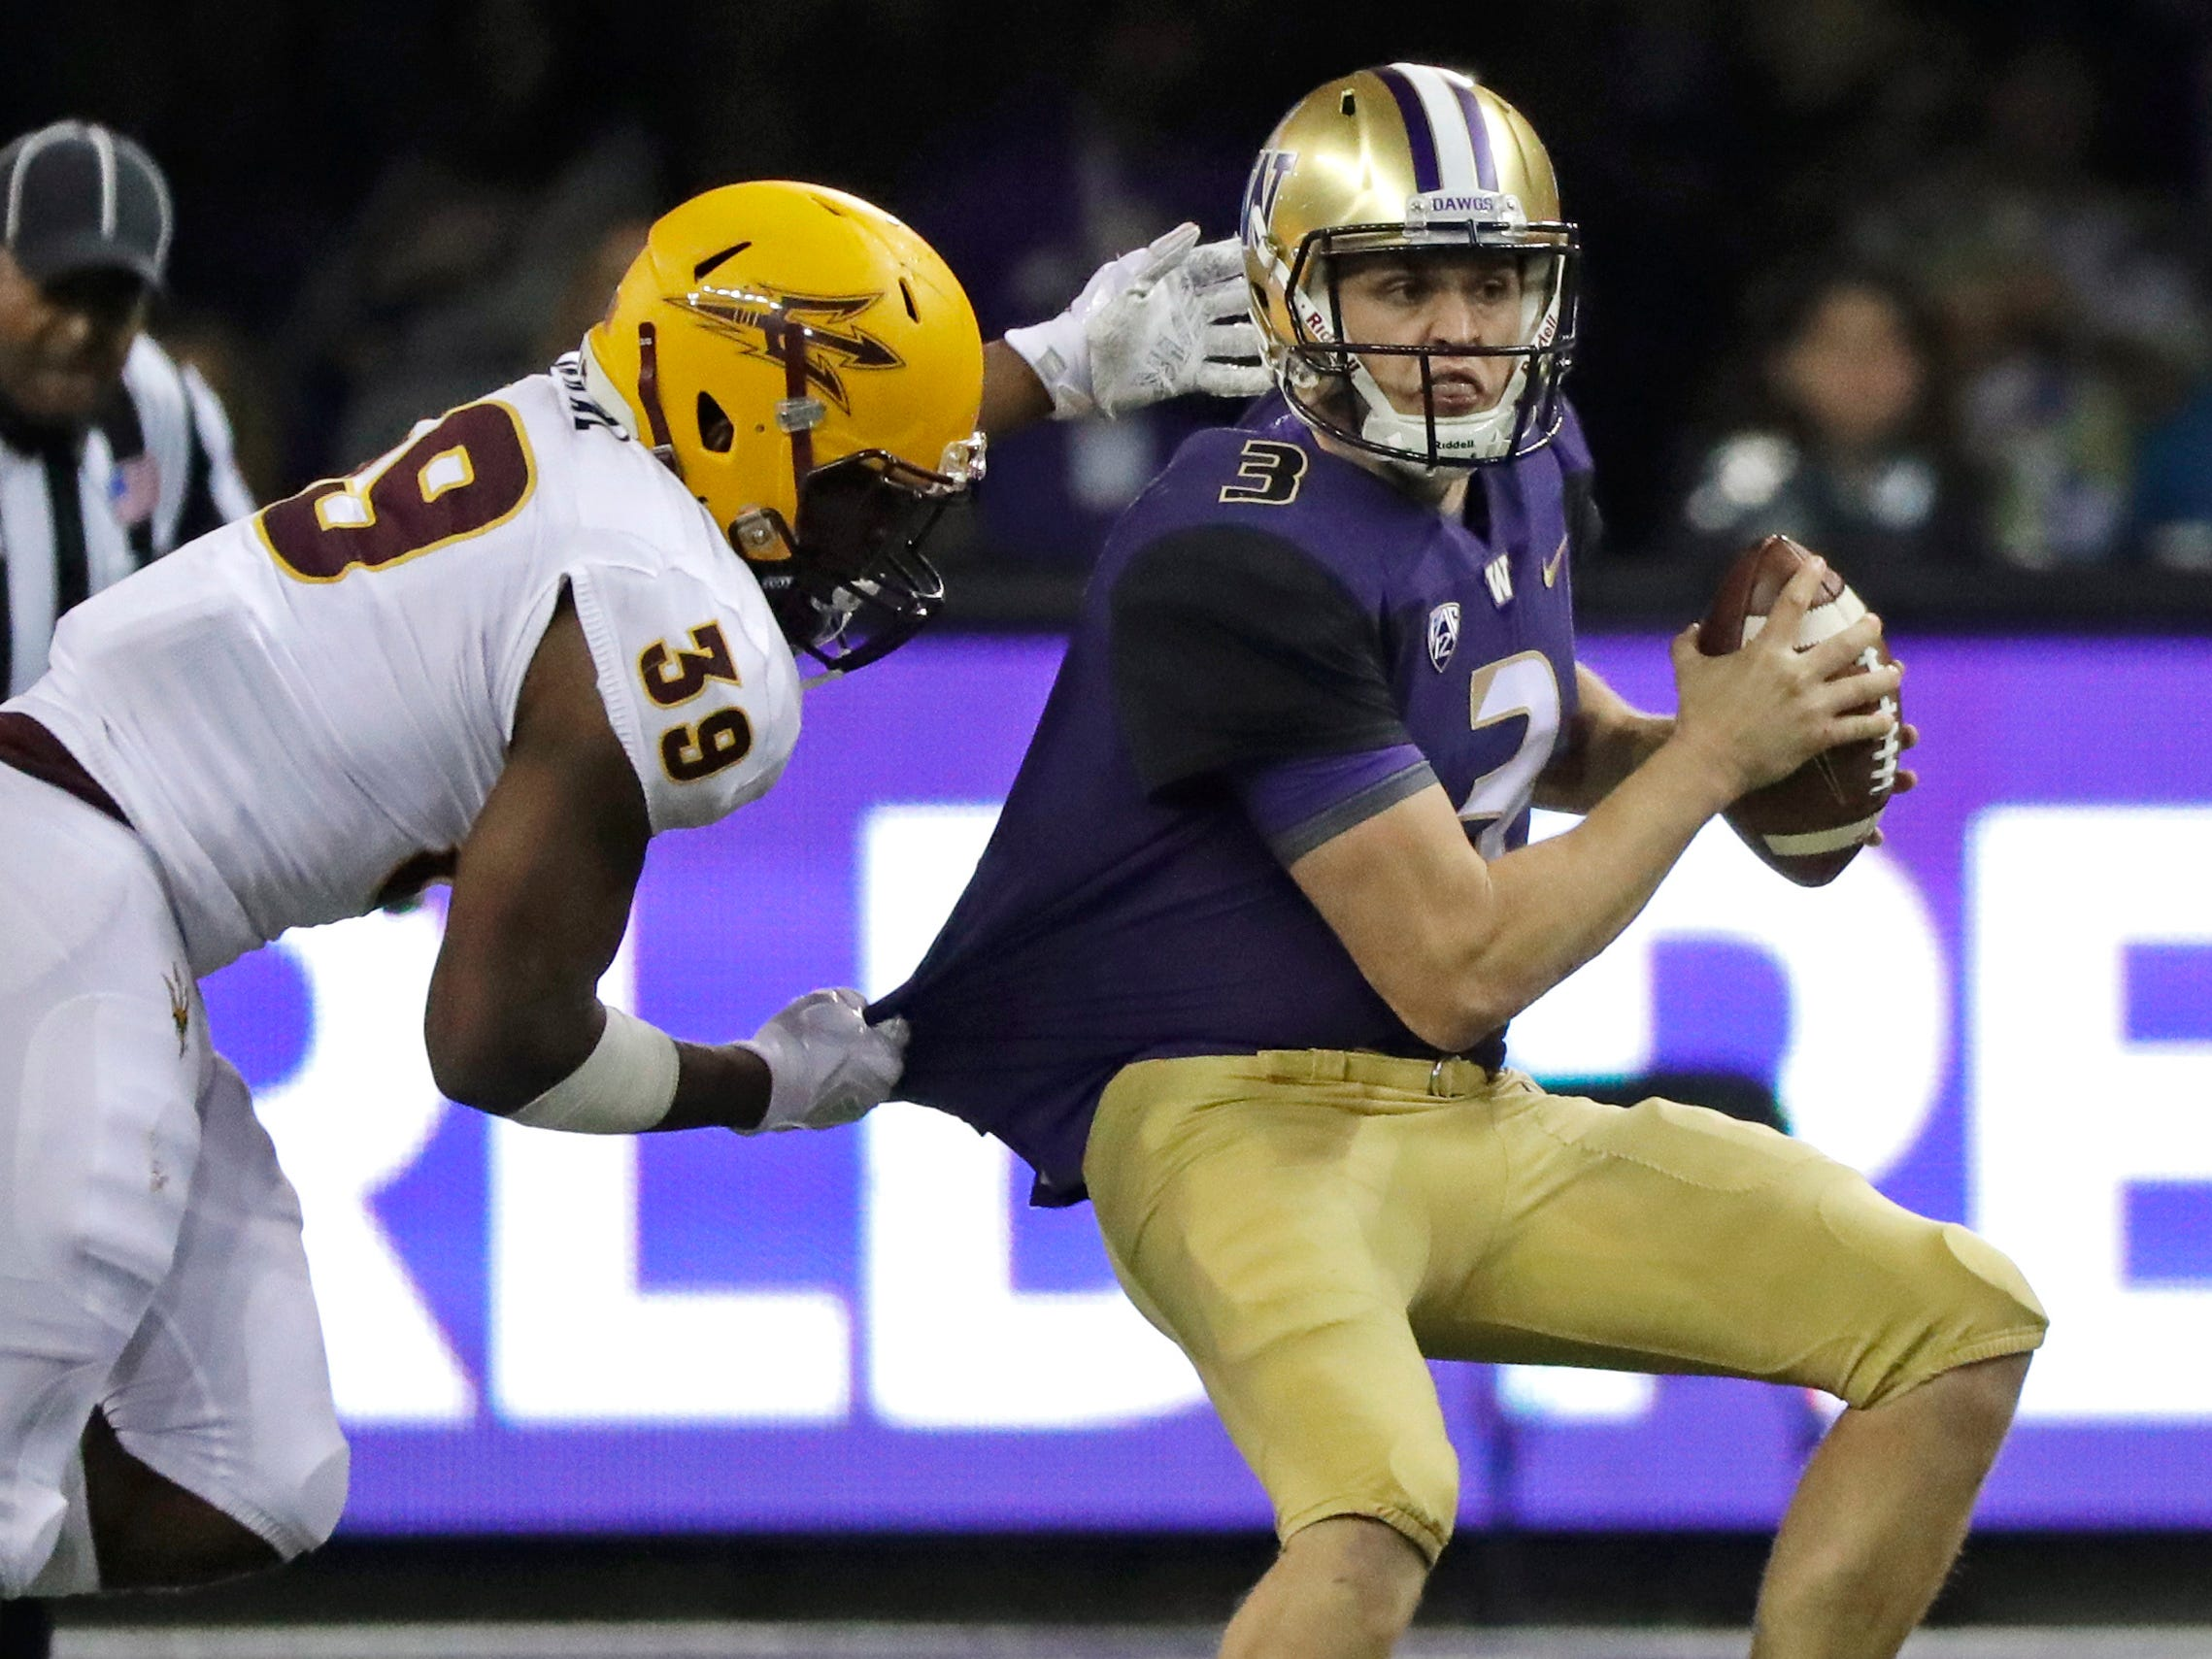 Washington quarterback Jake Browning, right, is sacked by Arizona State linebacker Malik Lawal (39) during the first half of an NCAA college football game Saturday, Sept. 22, 2018, in Seattle.